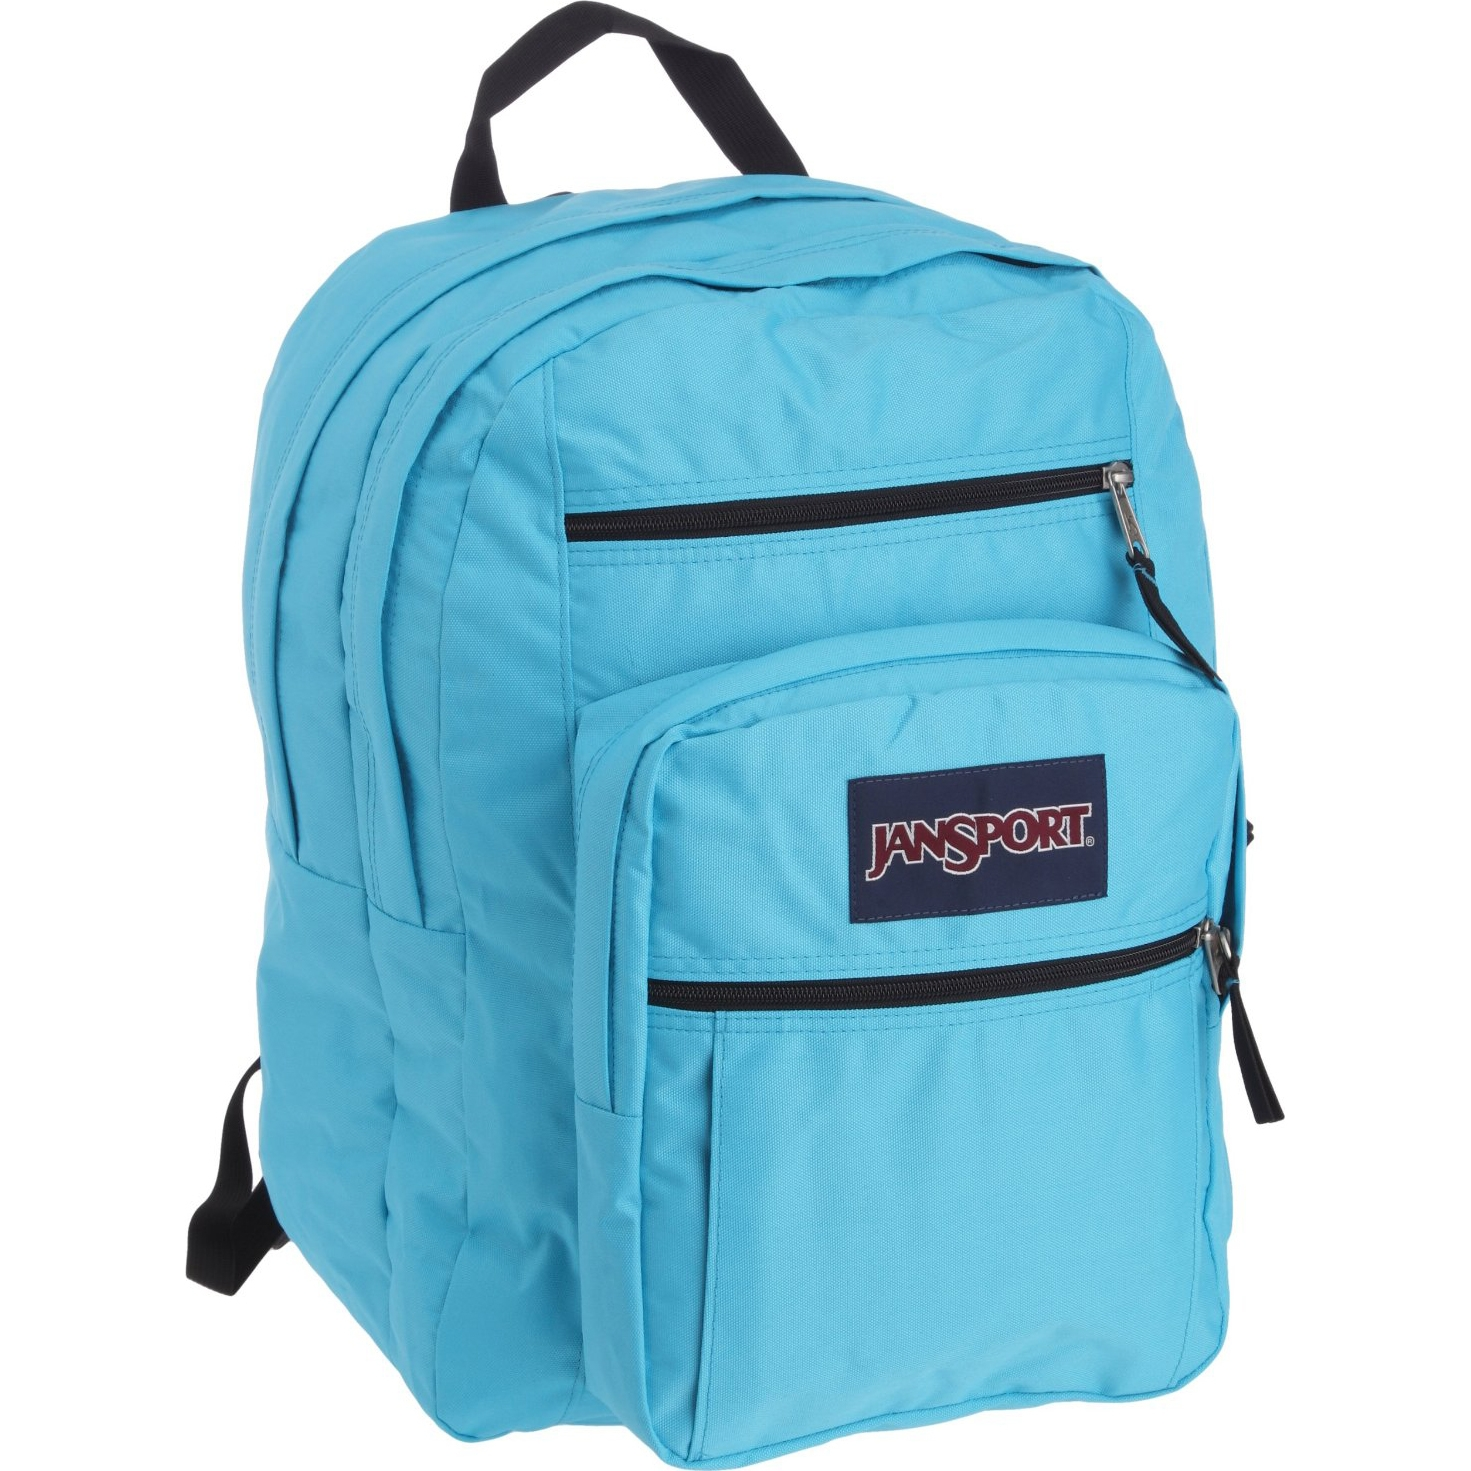 Jansport Backpacks Near Me V3umTIoQ